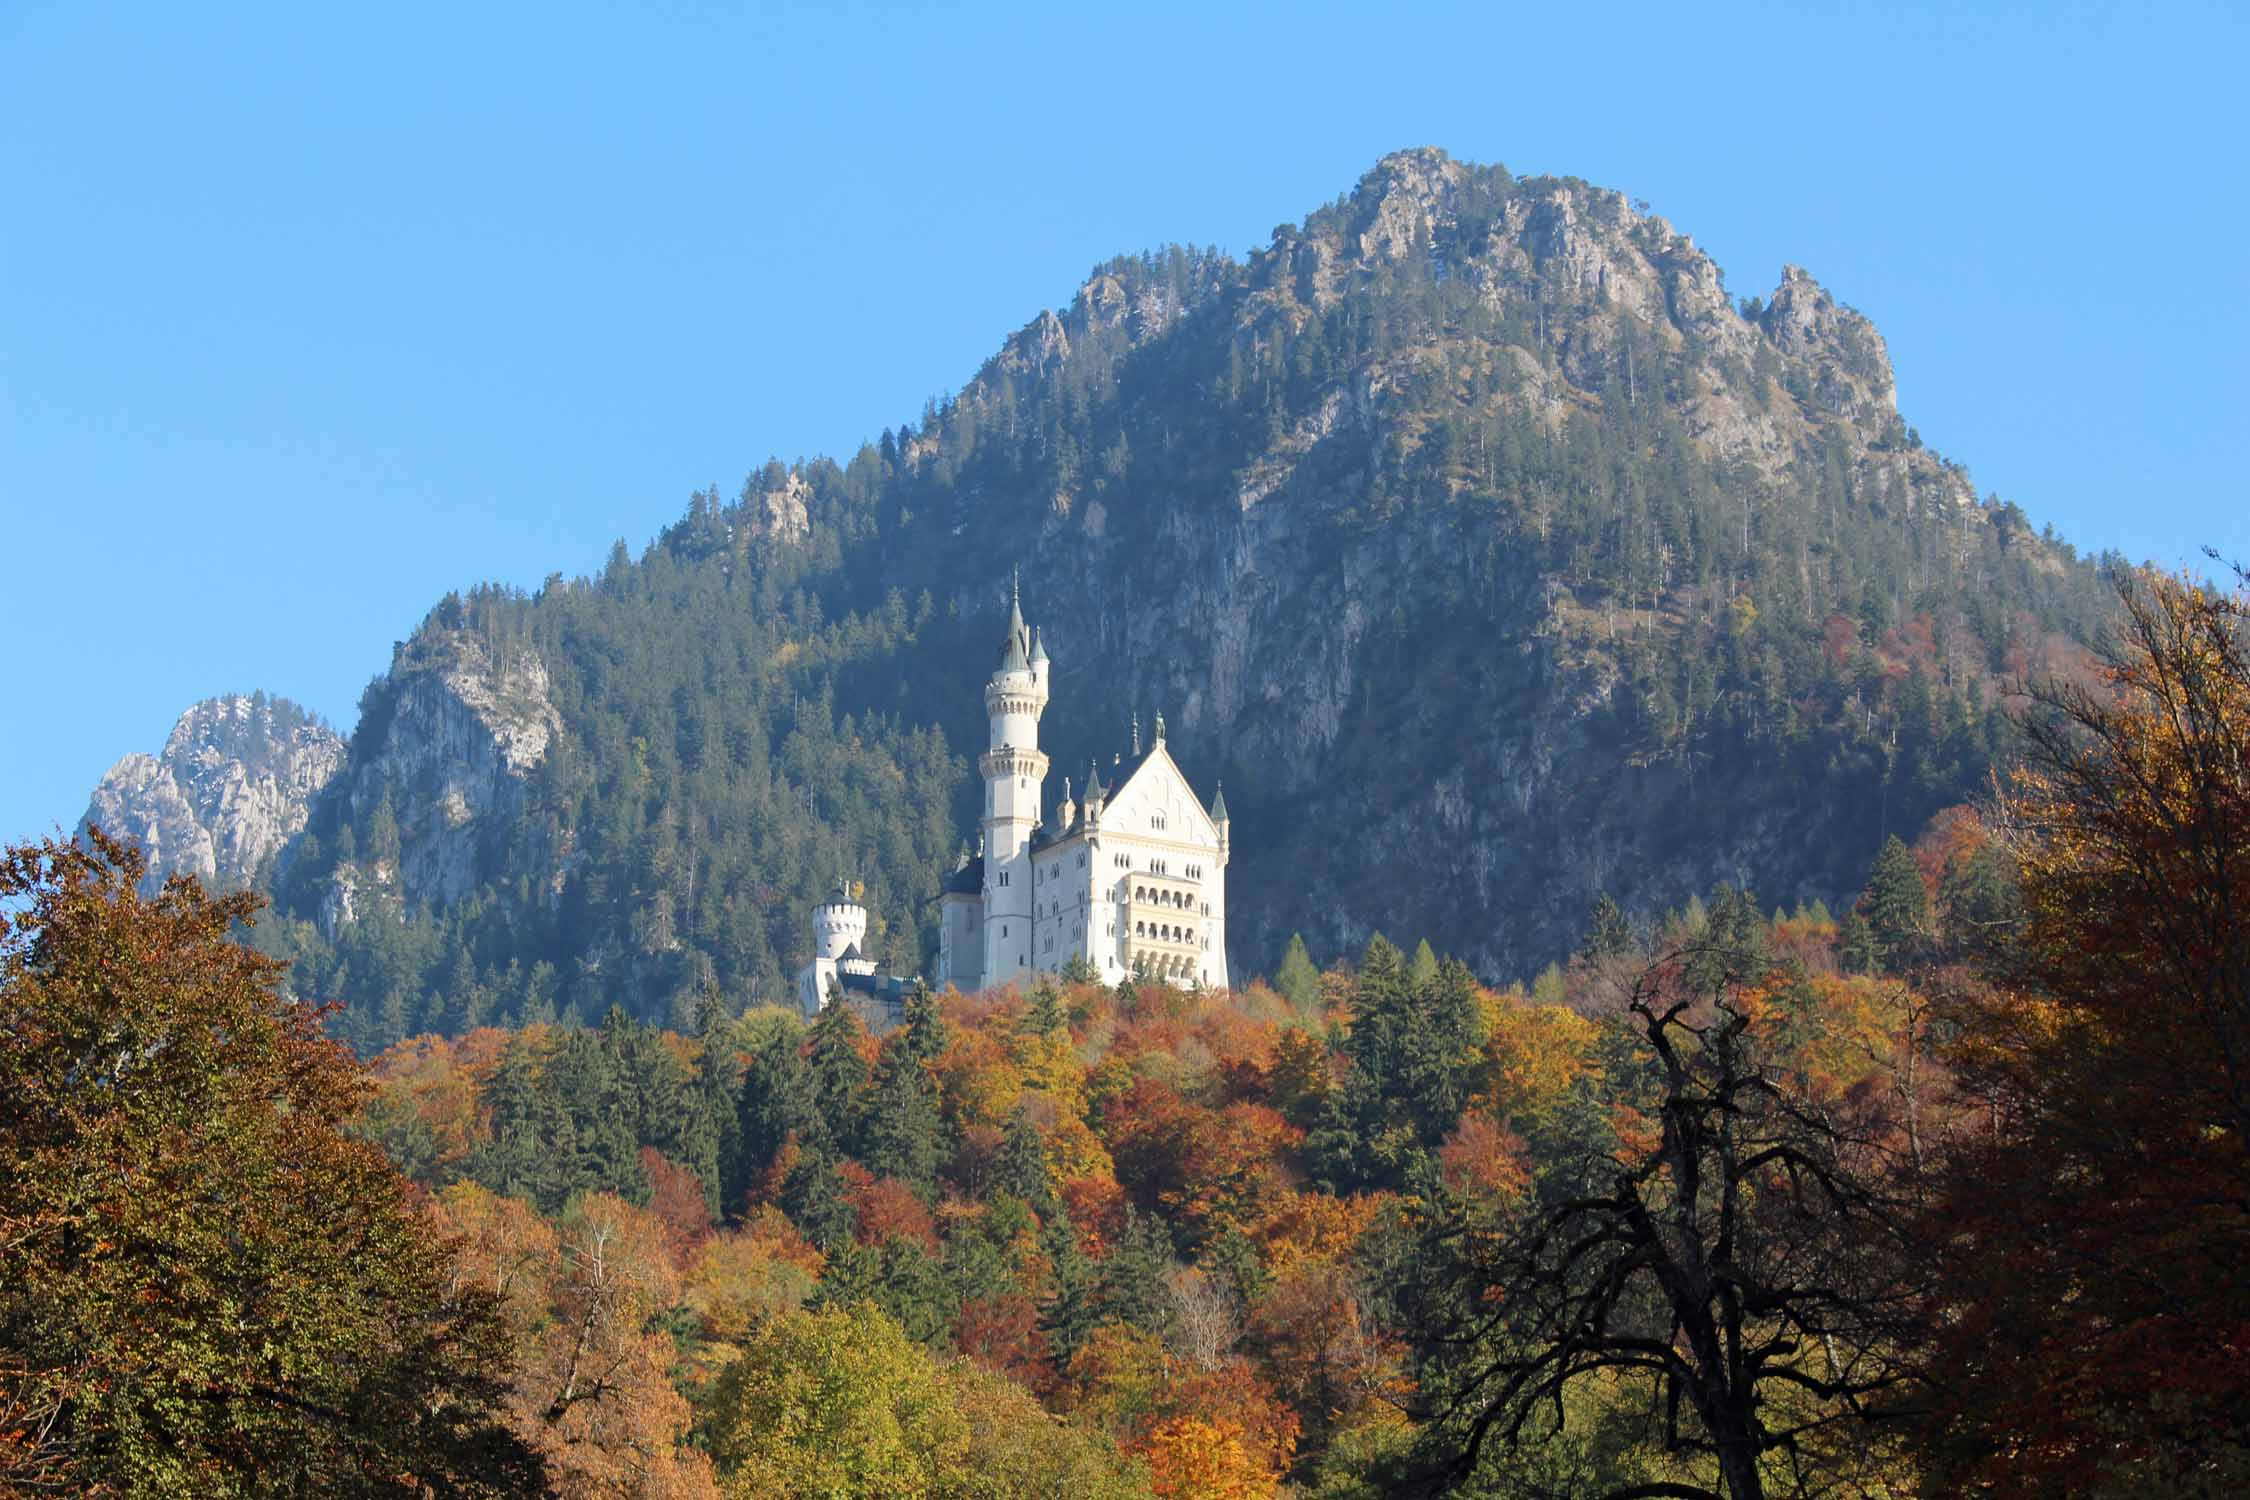 The beautiful castle of Neuschwanstein